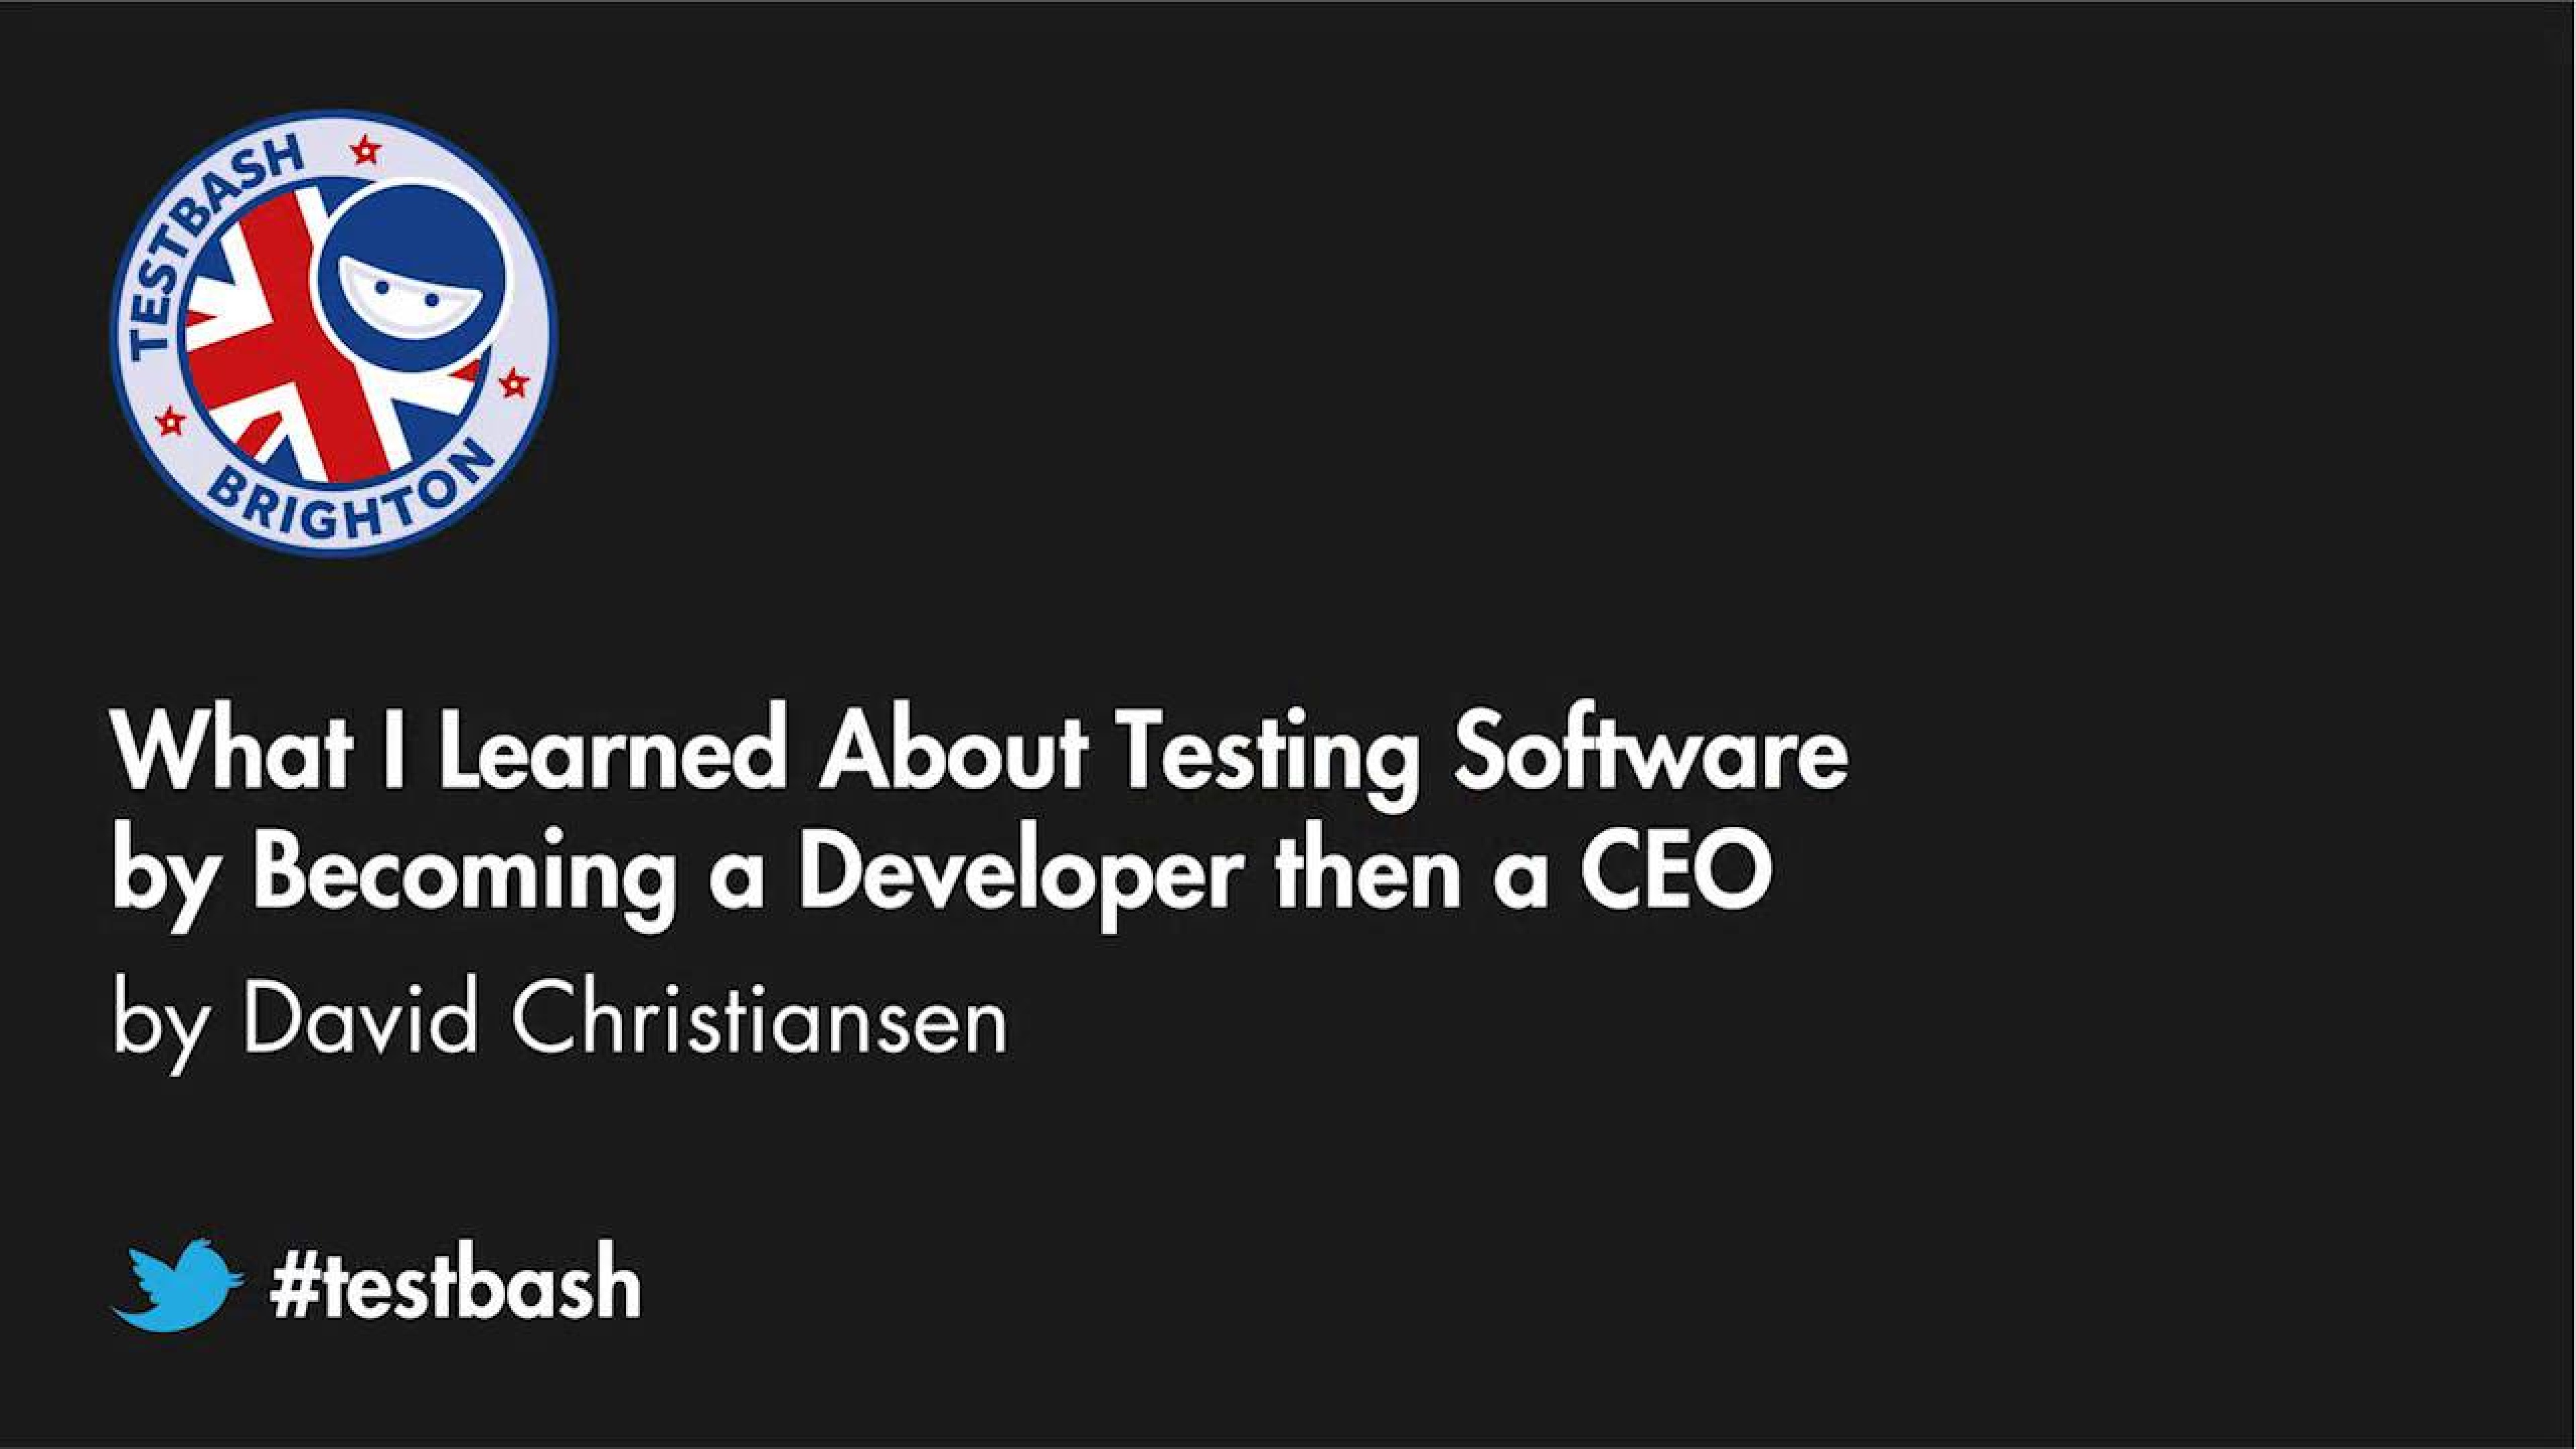 What I Learned About Testing Software By Becoming A Developer, Then A CEO - David Christiansen